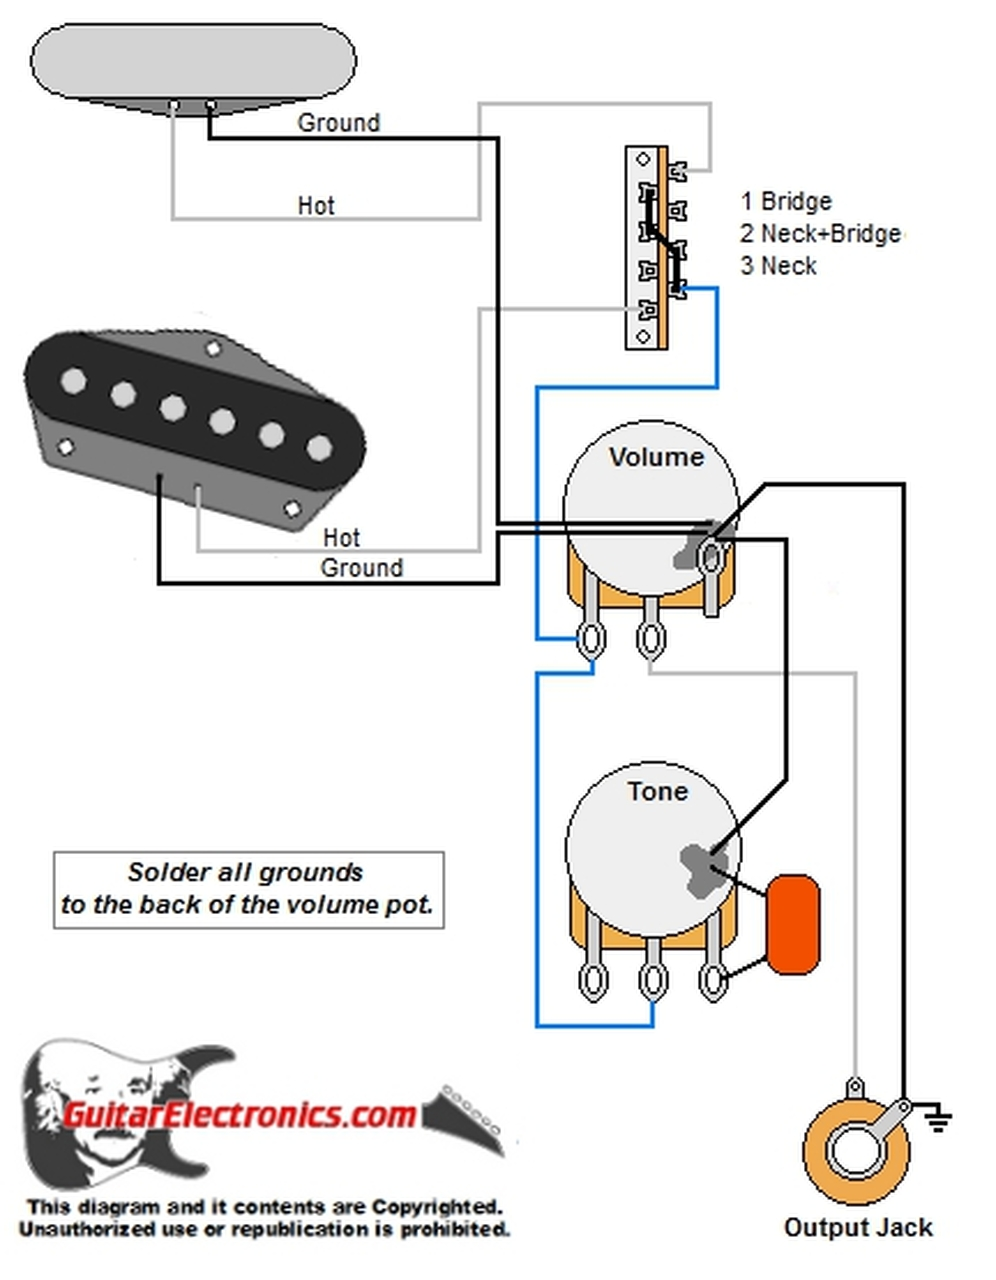 tele style guitar wiring diagram  guitar electronics